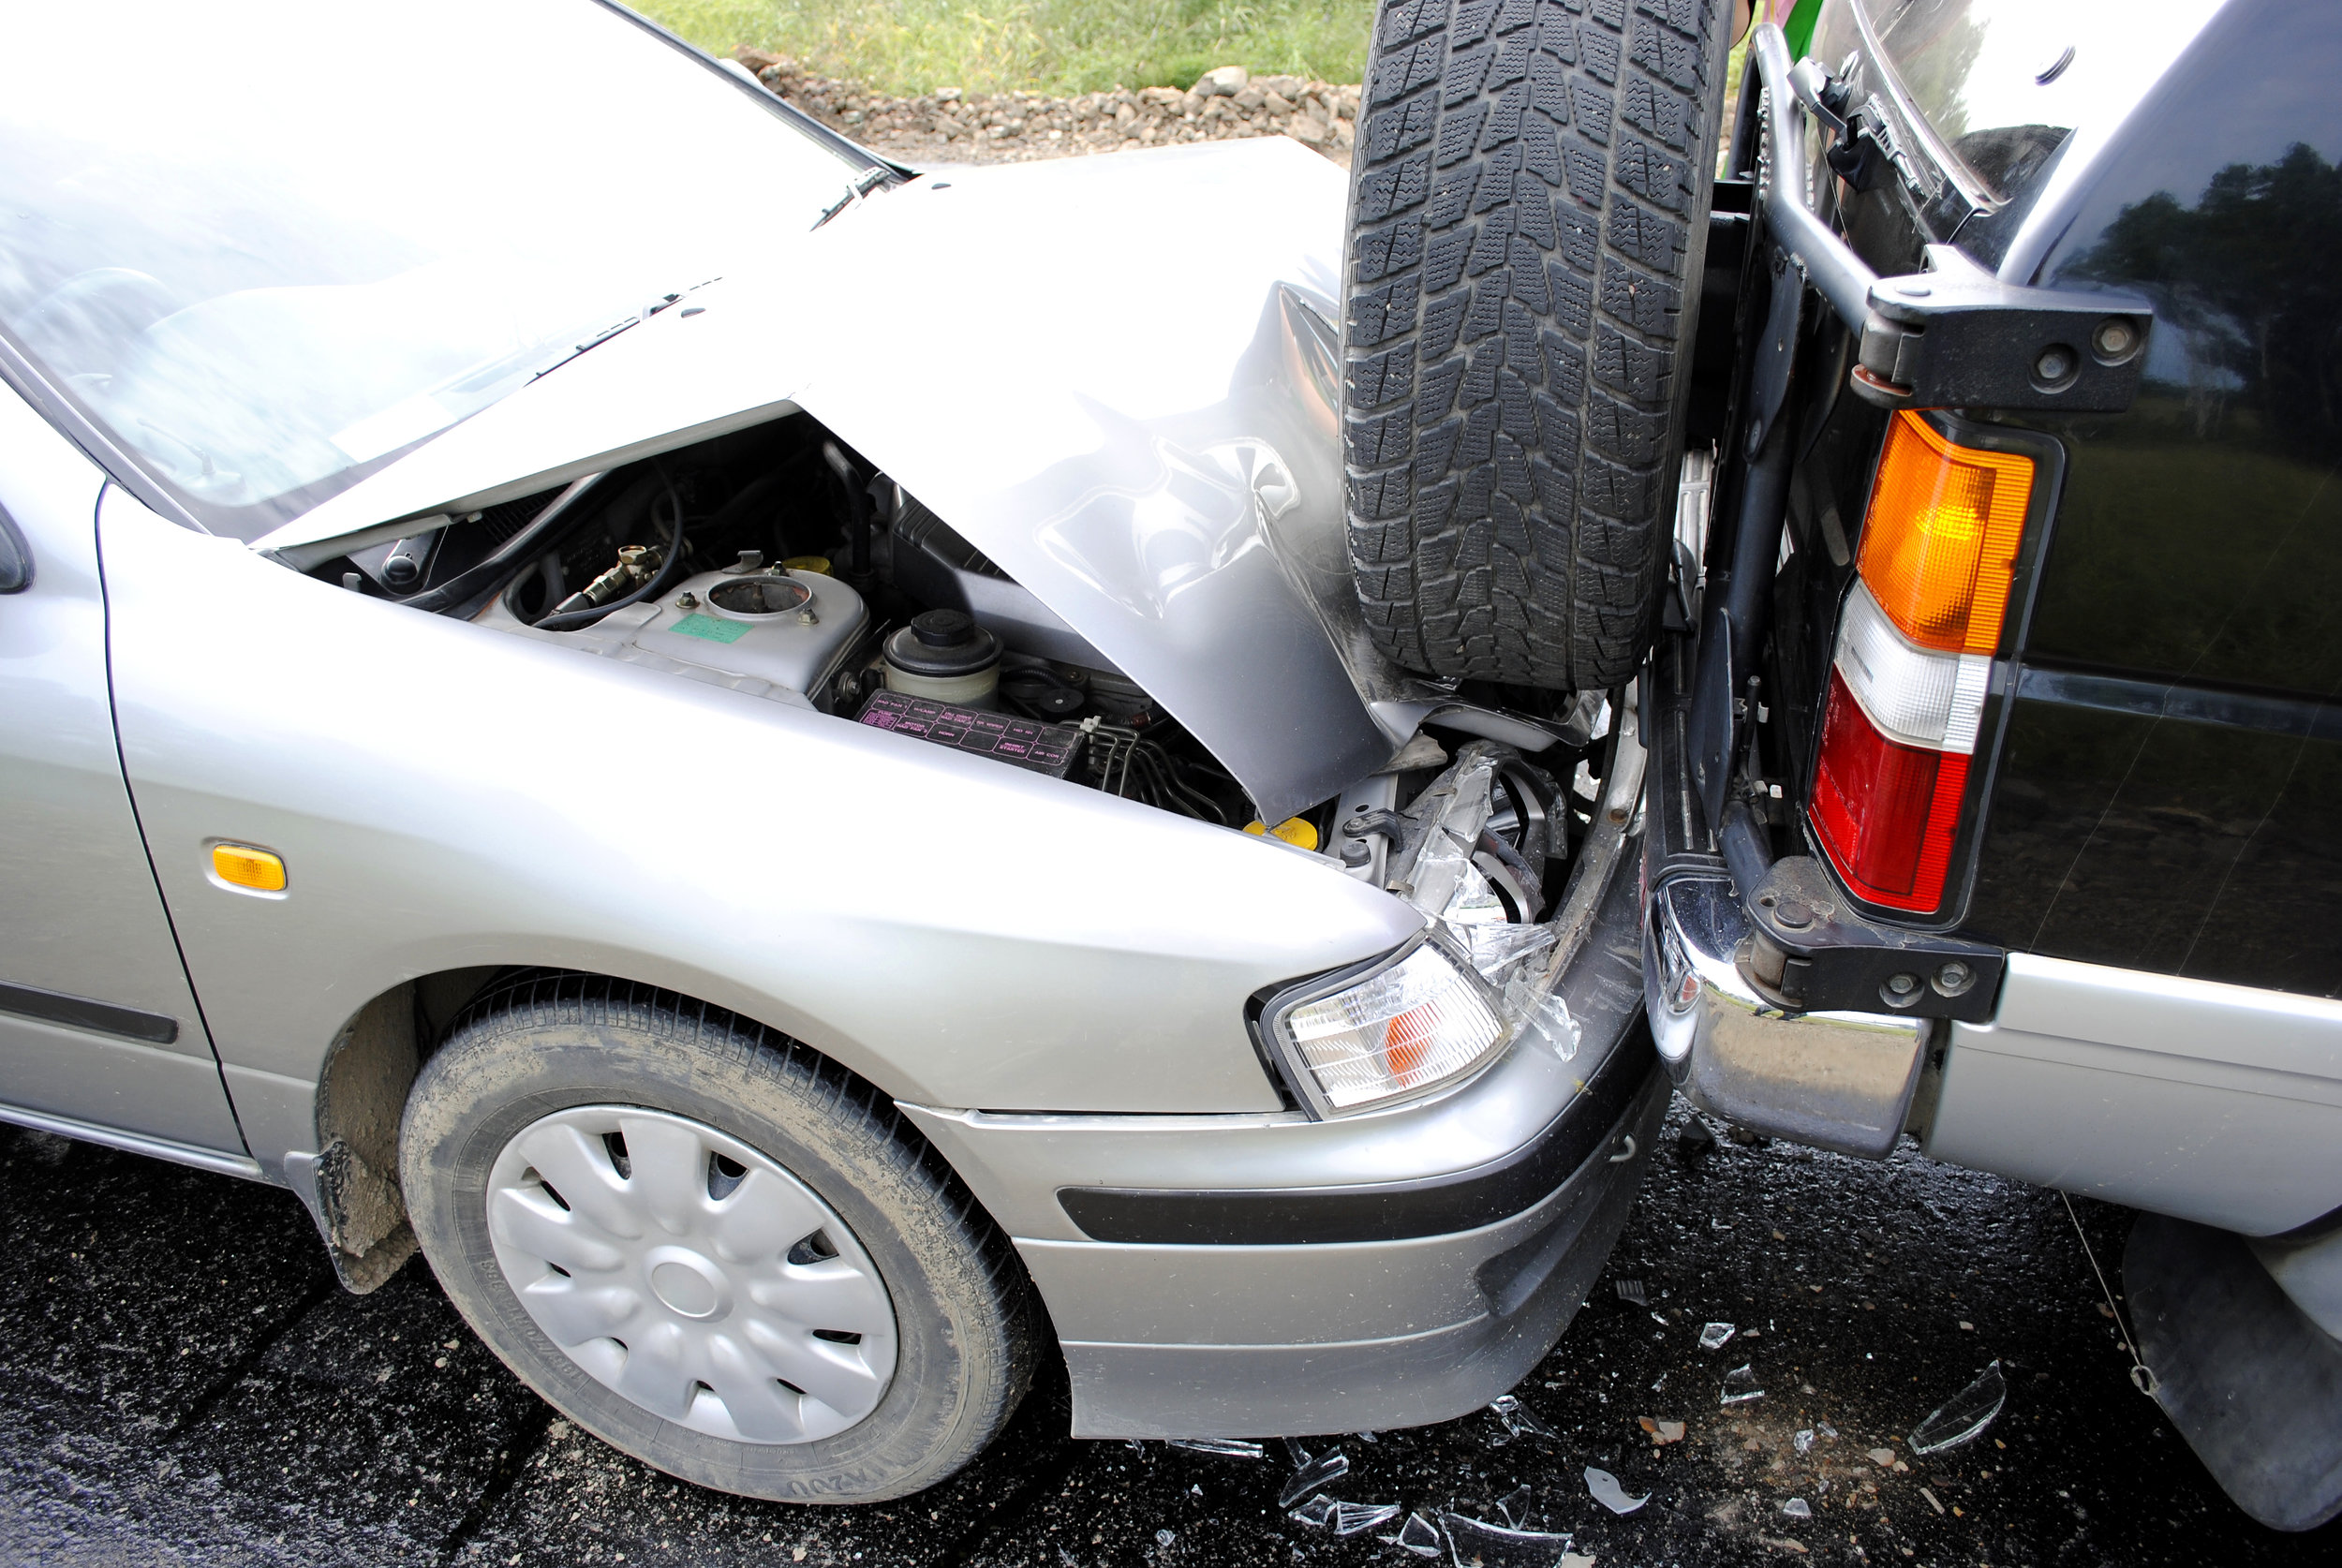 Traffic Accidents   Our office handles personal injury cases where the driver or passenger is injured due to a traffic accident. Our experience in these types of cases sets us apart from other firms. Call today for a free consultation.